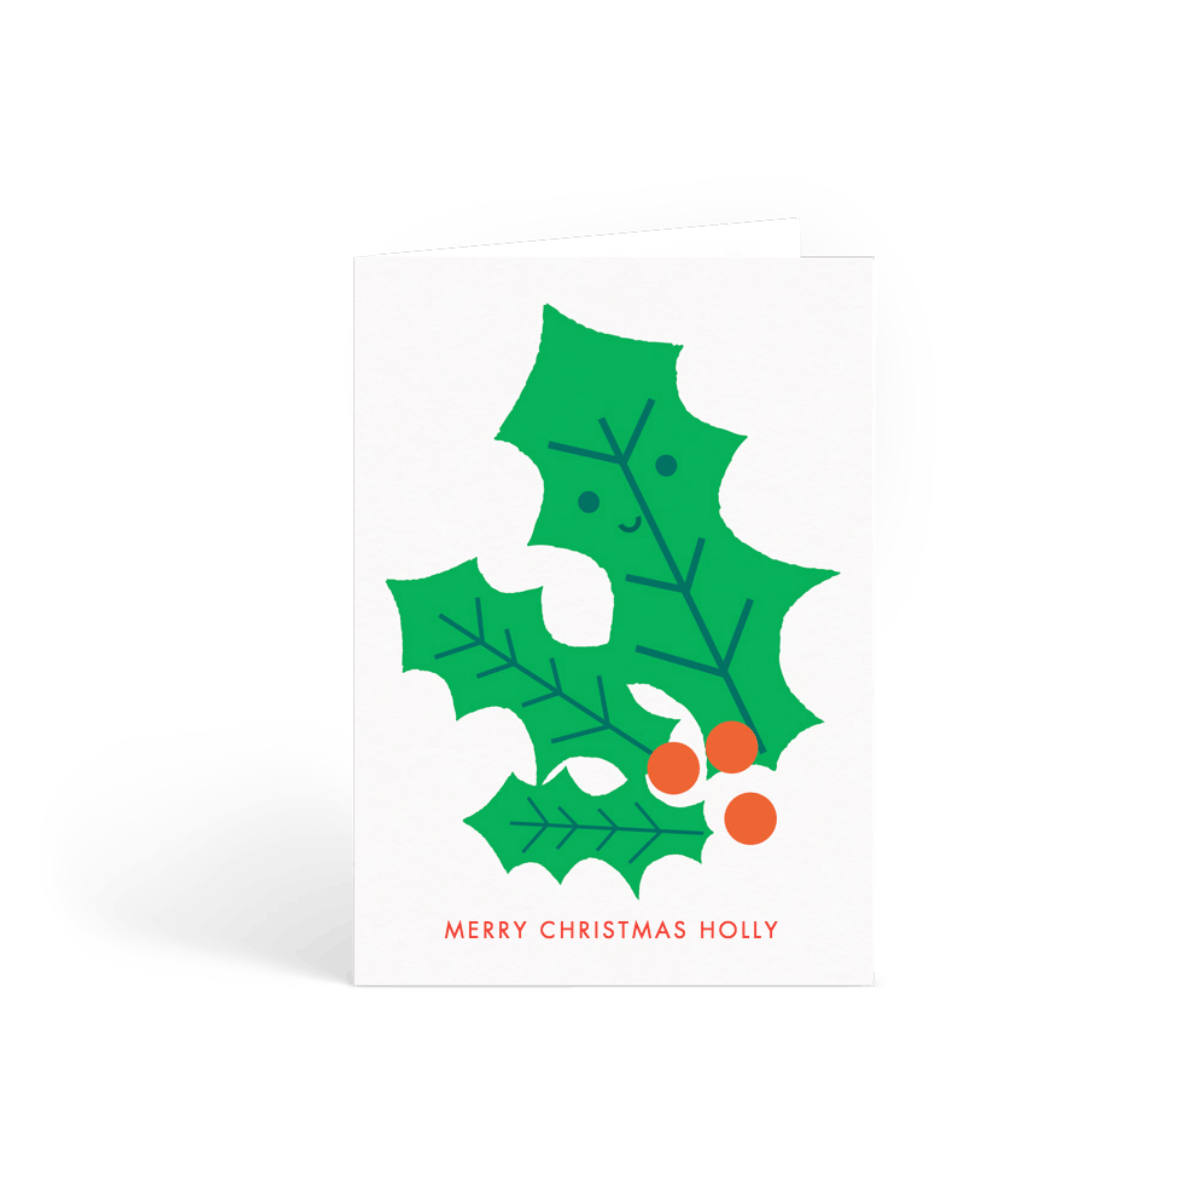 Https%3a%2f%2fwww.papier.com%2fproduct image%2f14291%2f2%2fhappy holly 3818 front 1542374700.png?ixlib=rb 1.1